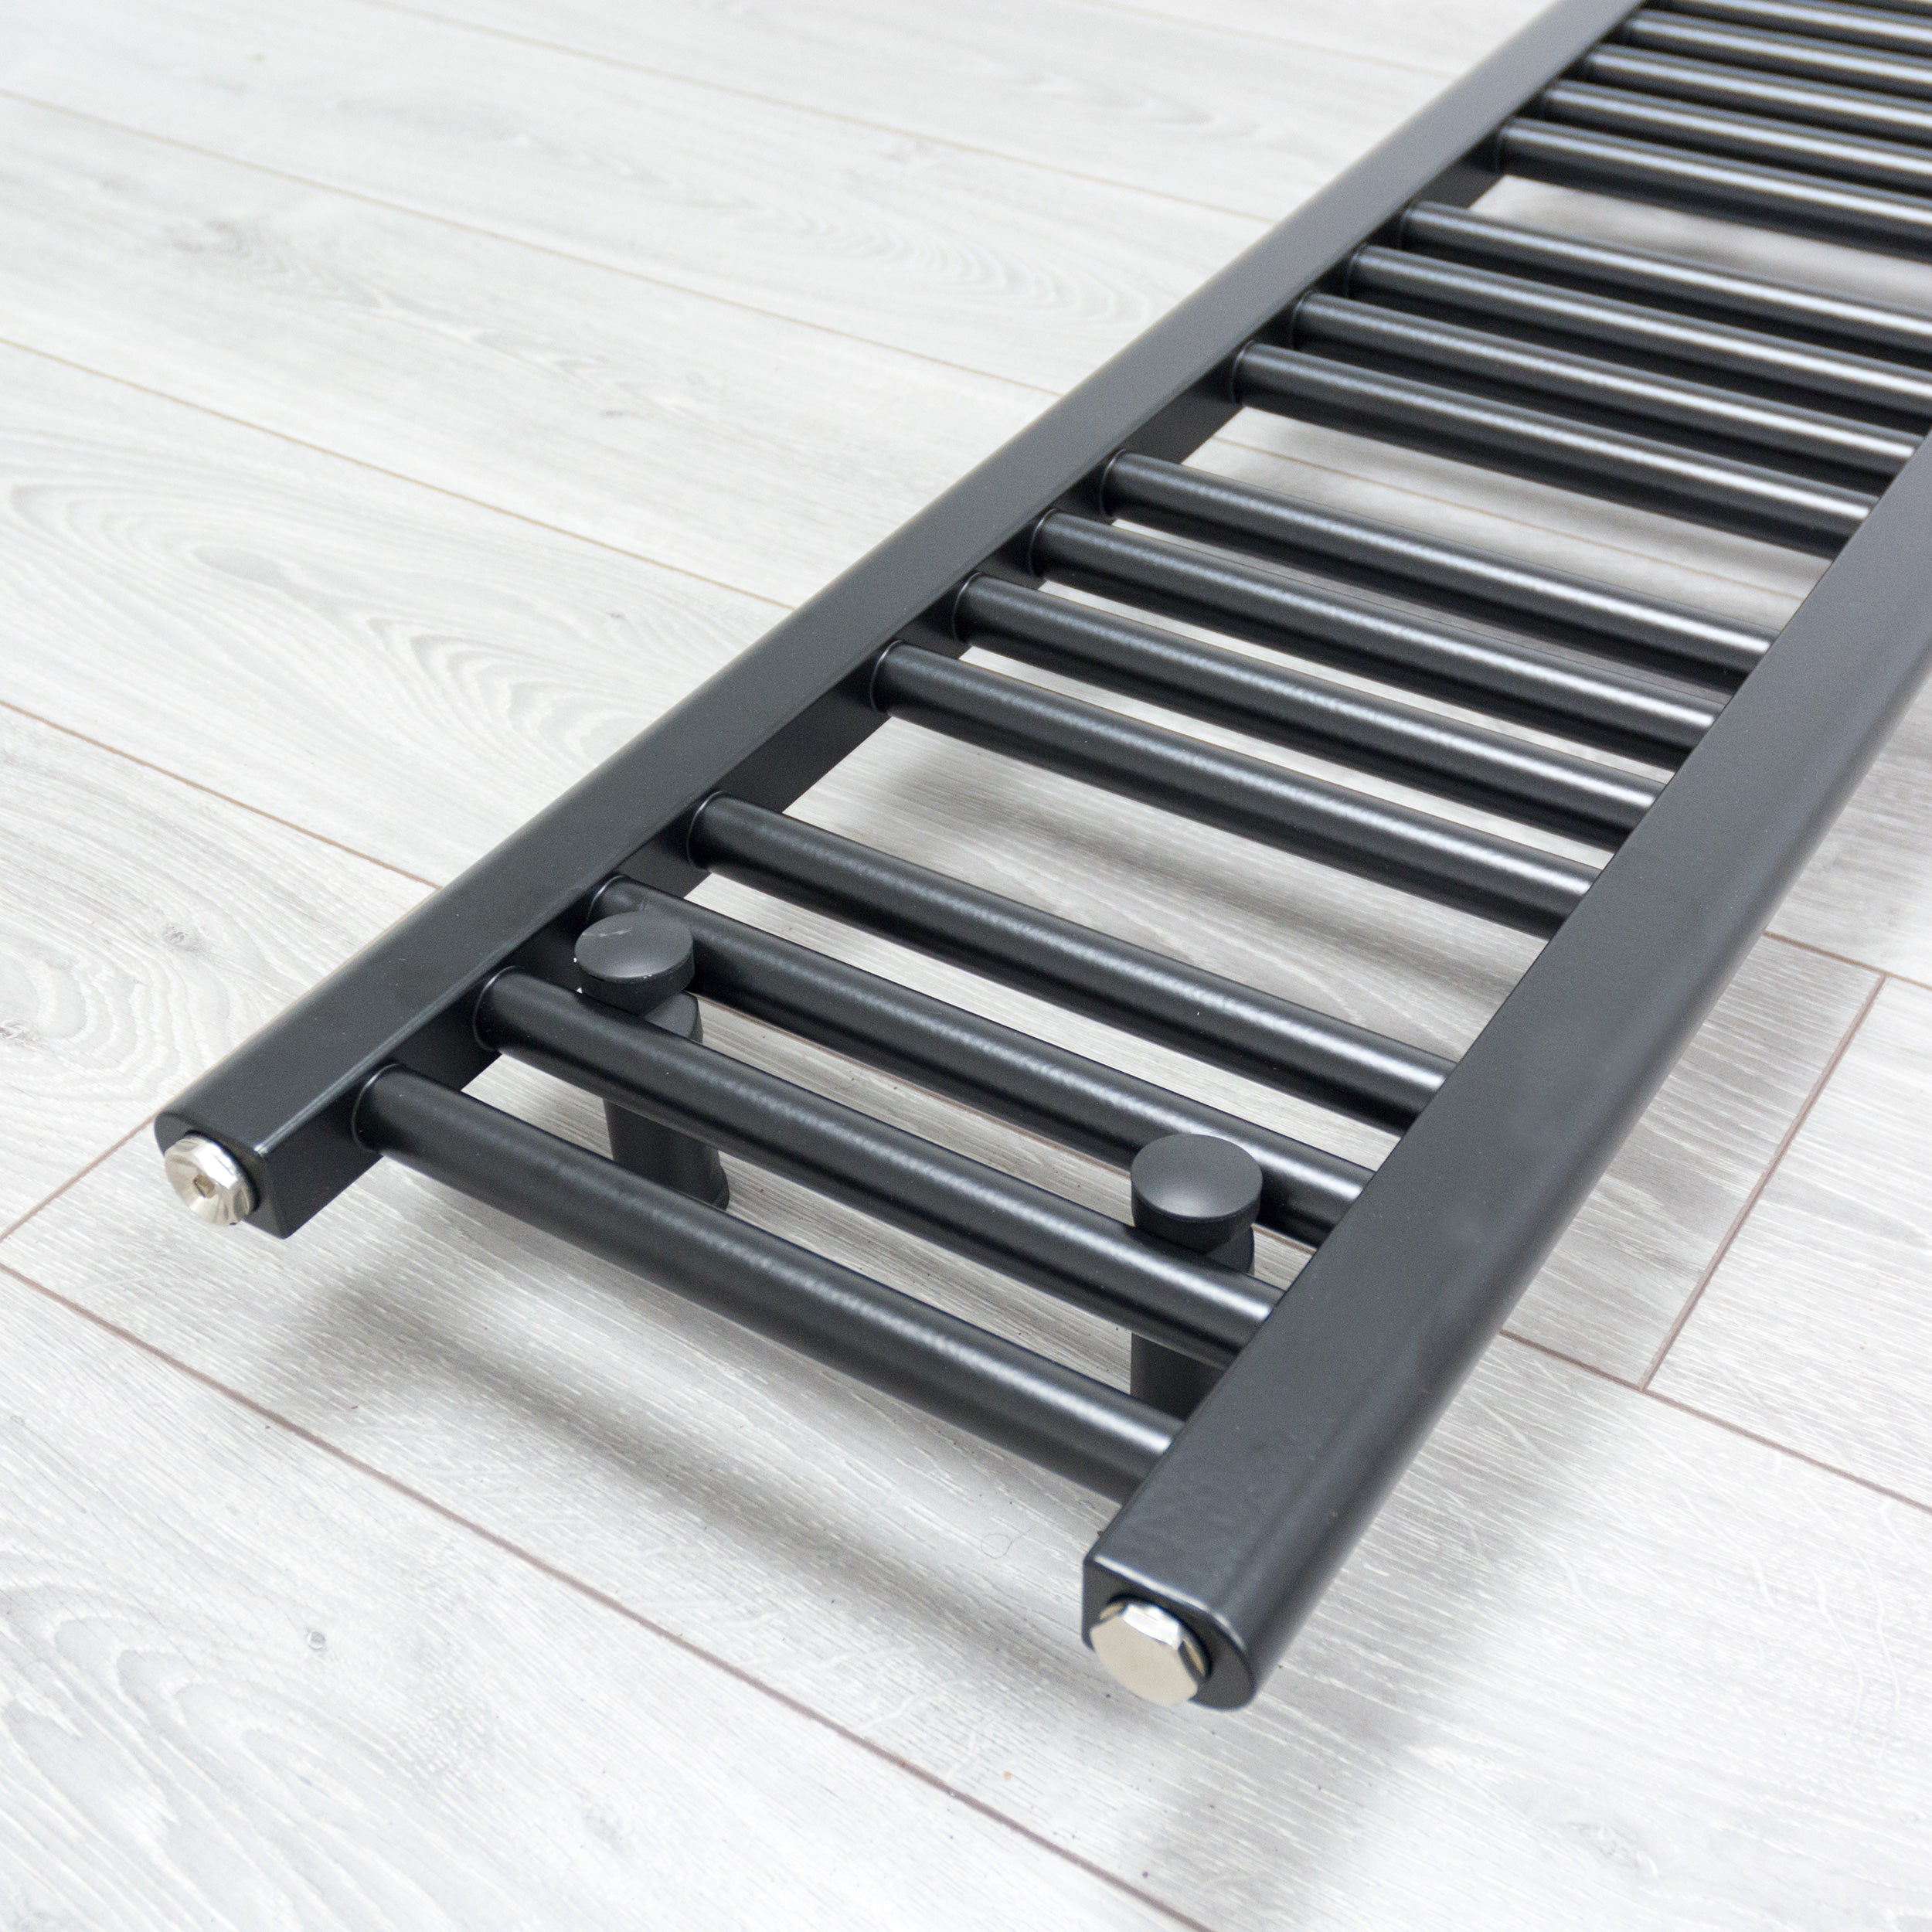 300mm Wide Black Designer Electric Heated Towel Rail: 600 Mm High X 300 Mm Wide Flat Black Heated Towel Rail